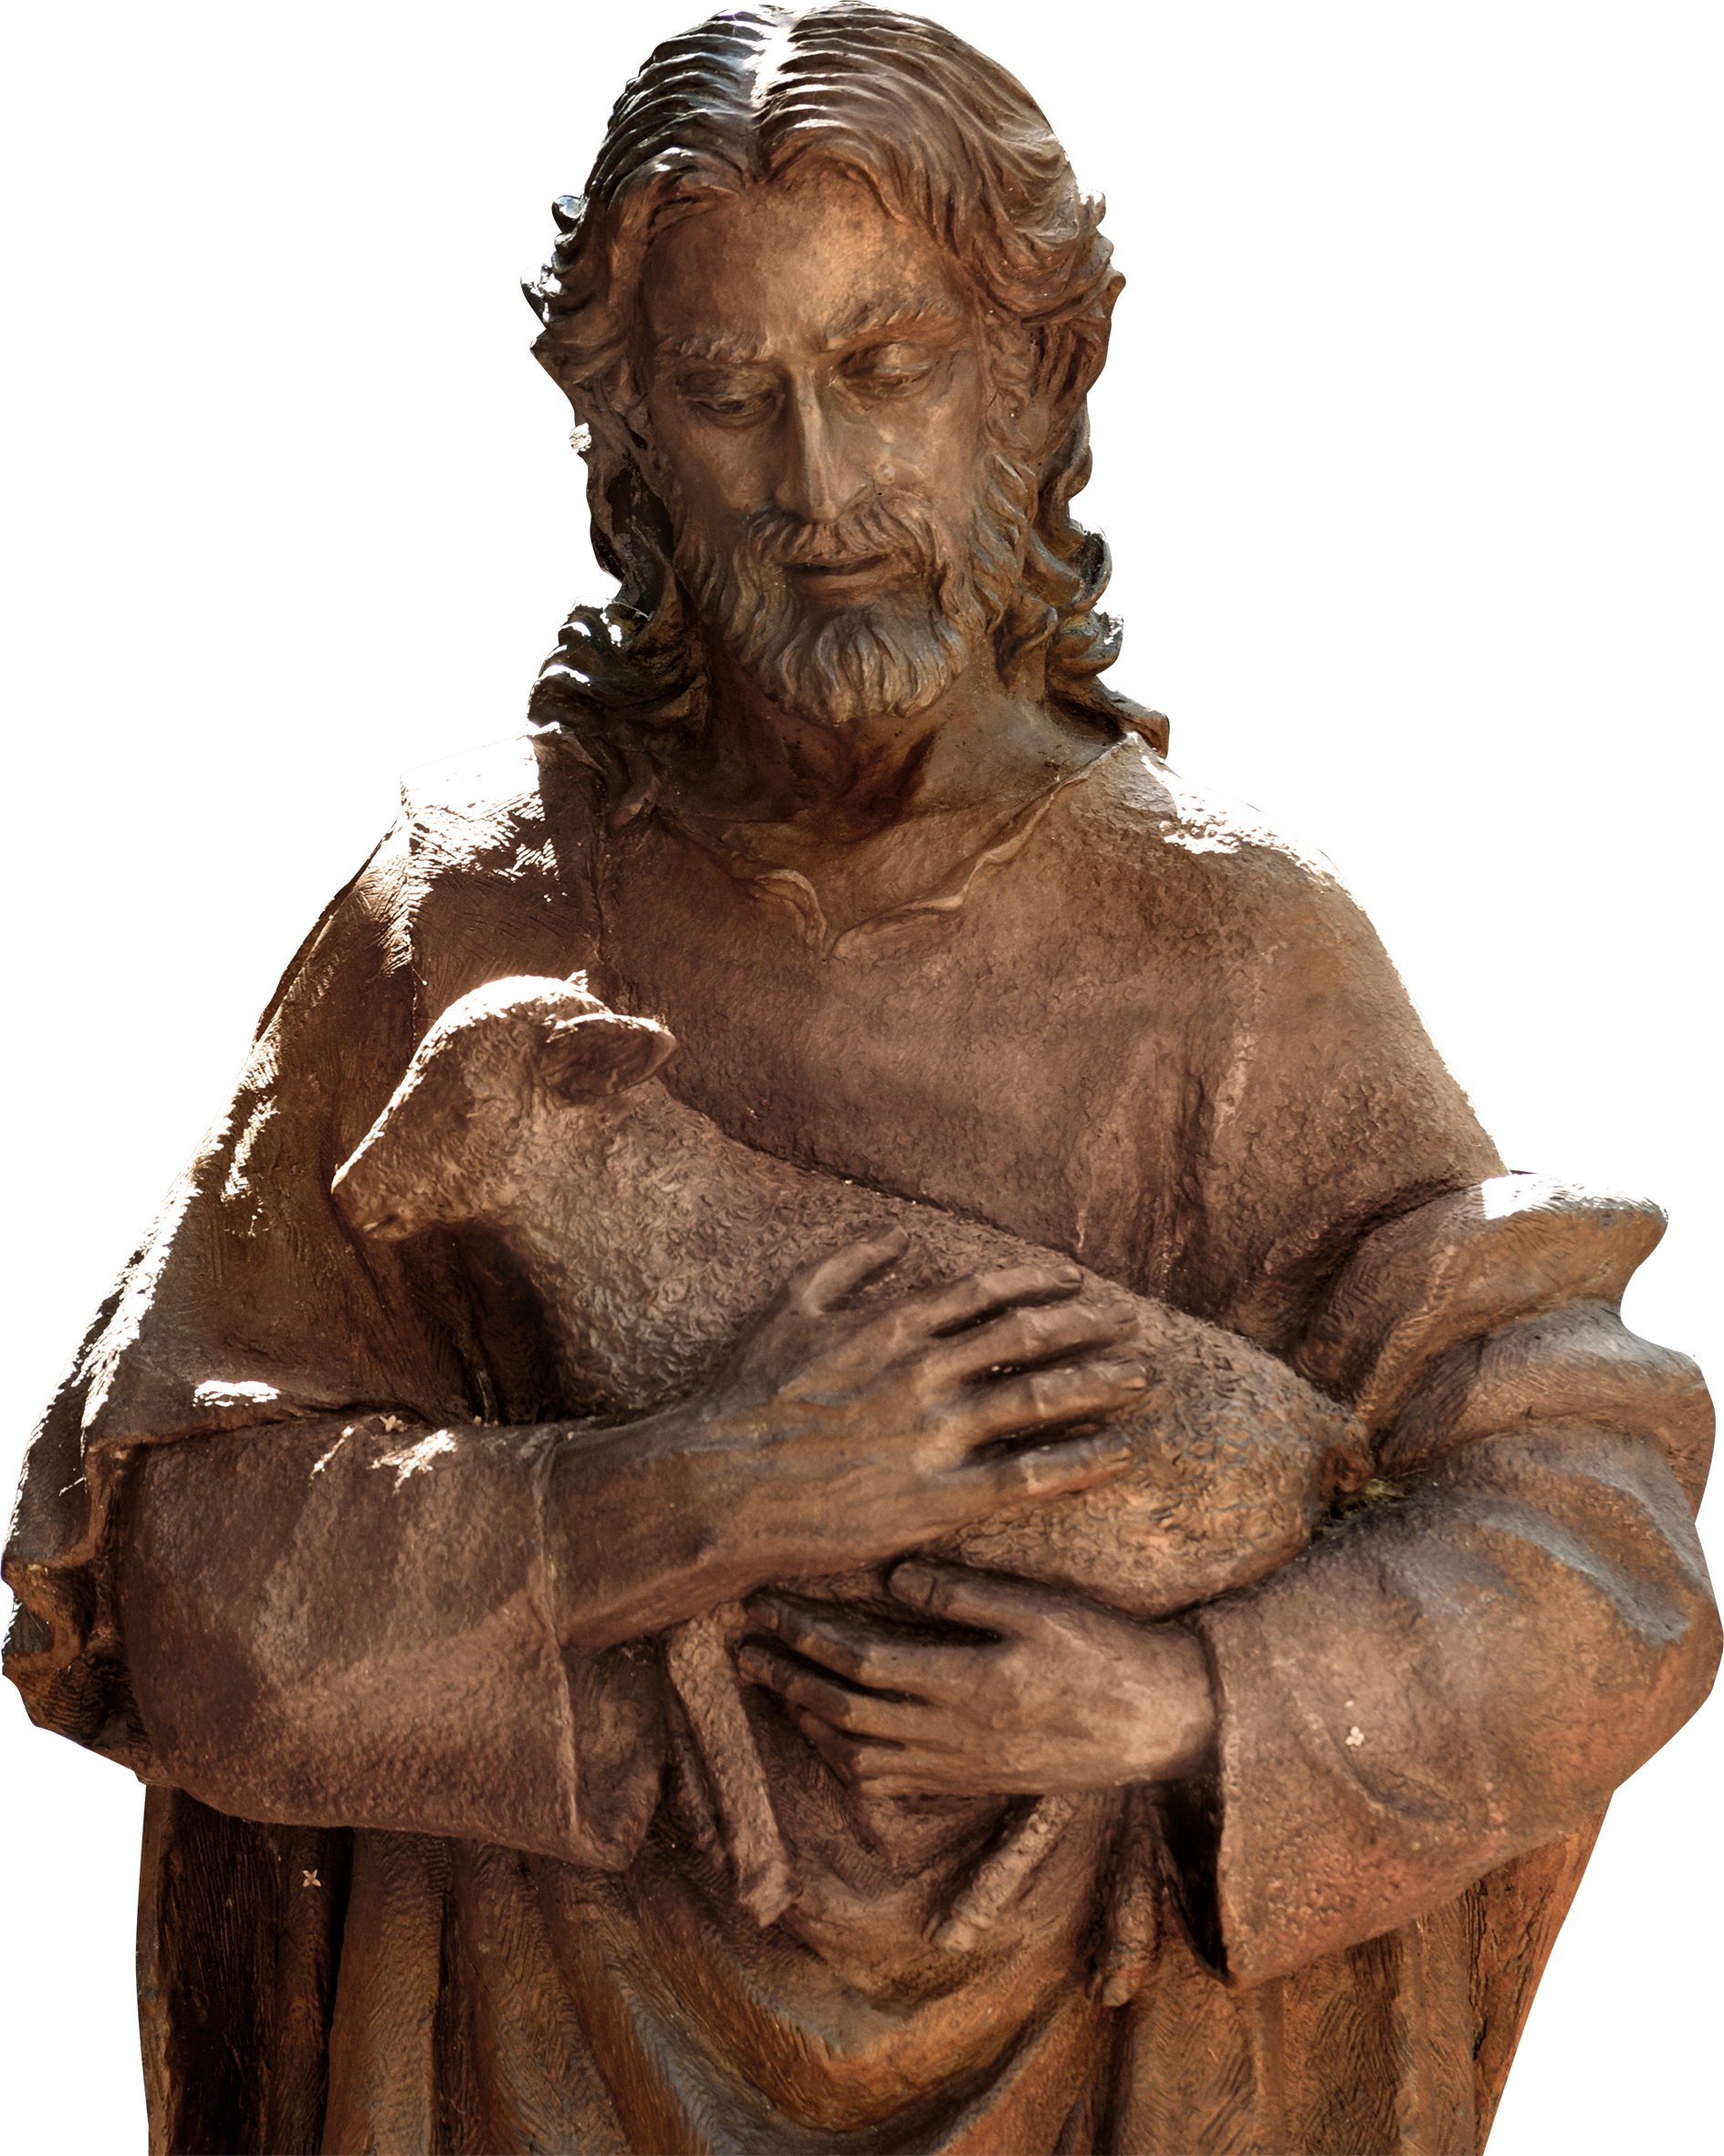 jesus-christ-good-shepherd-religion-161289.png (1889×2362)